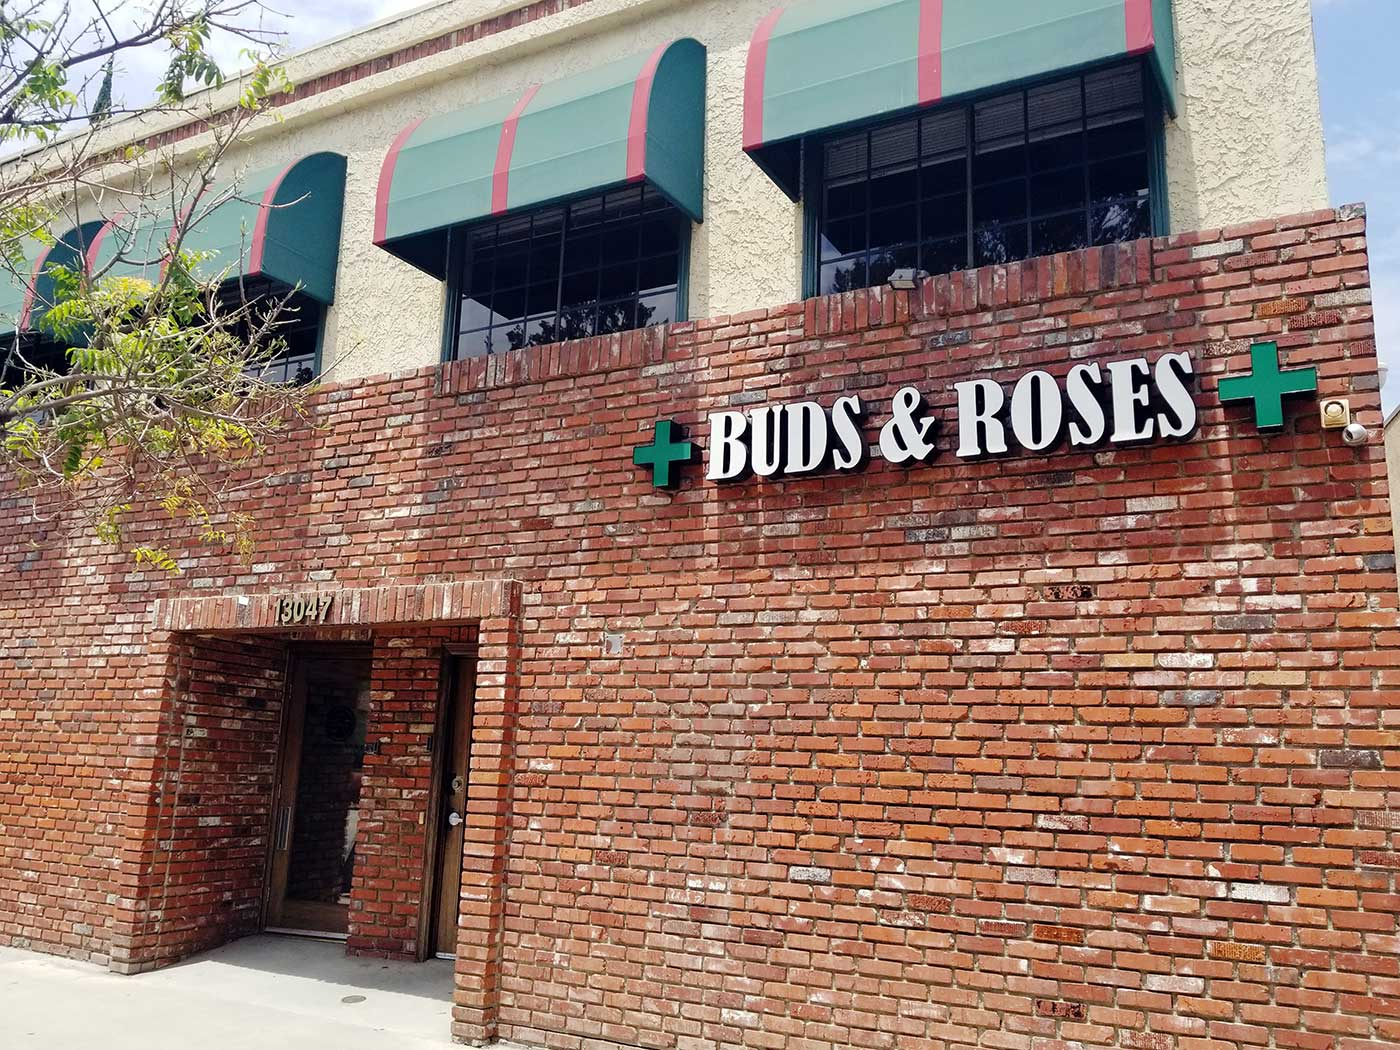 Buds & Roses in Studio City